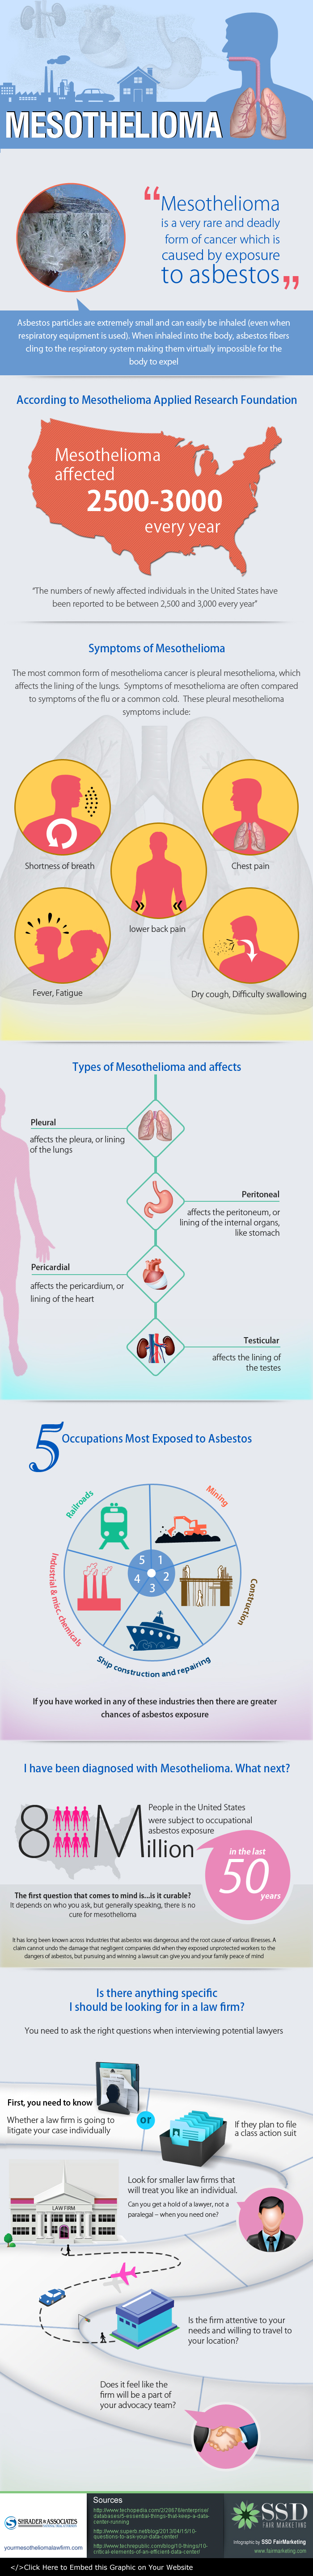 mesothelioma-stages-infographic